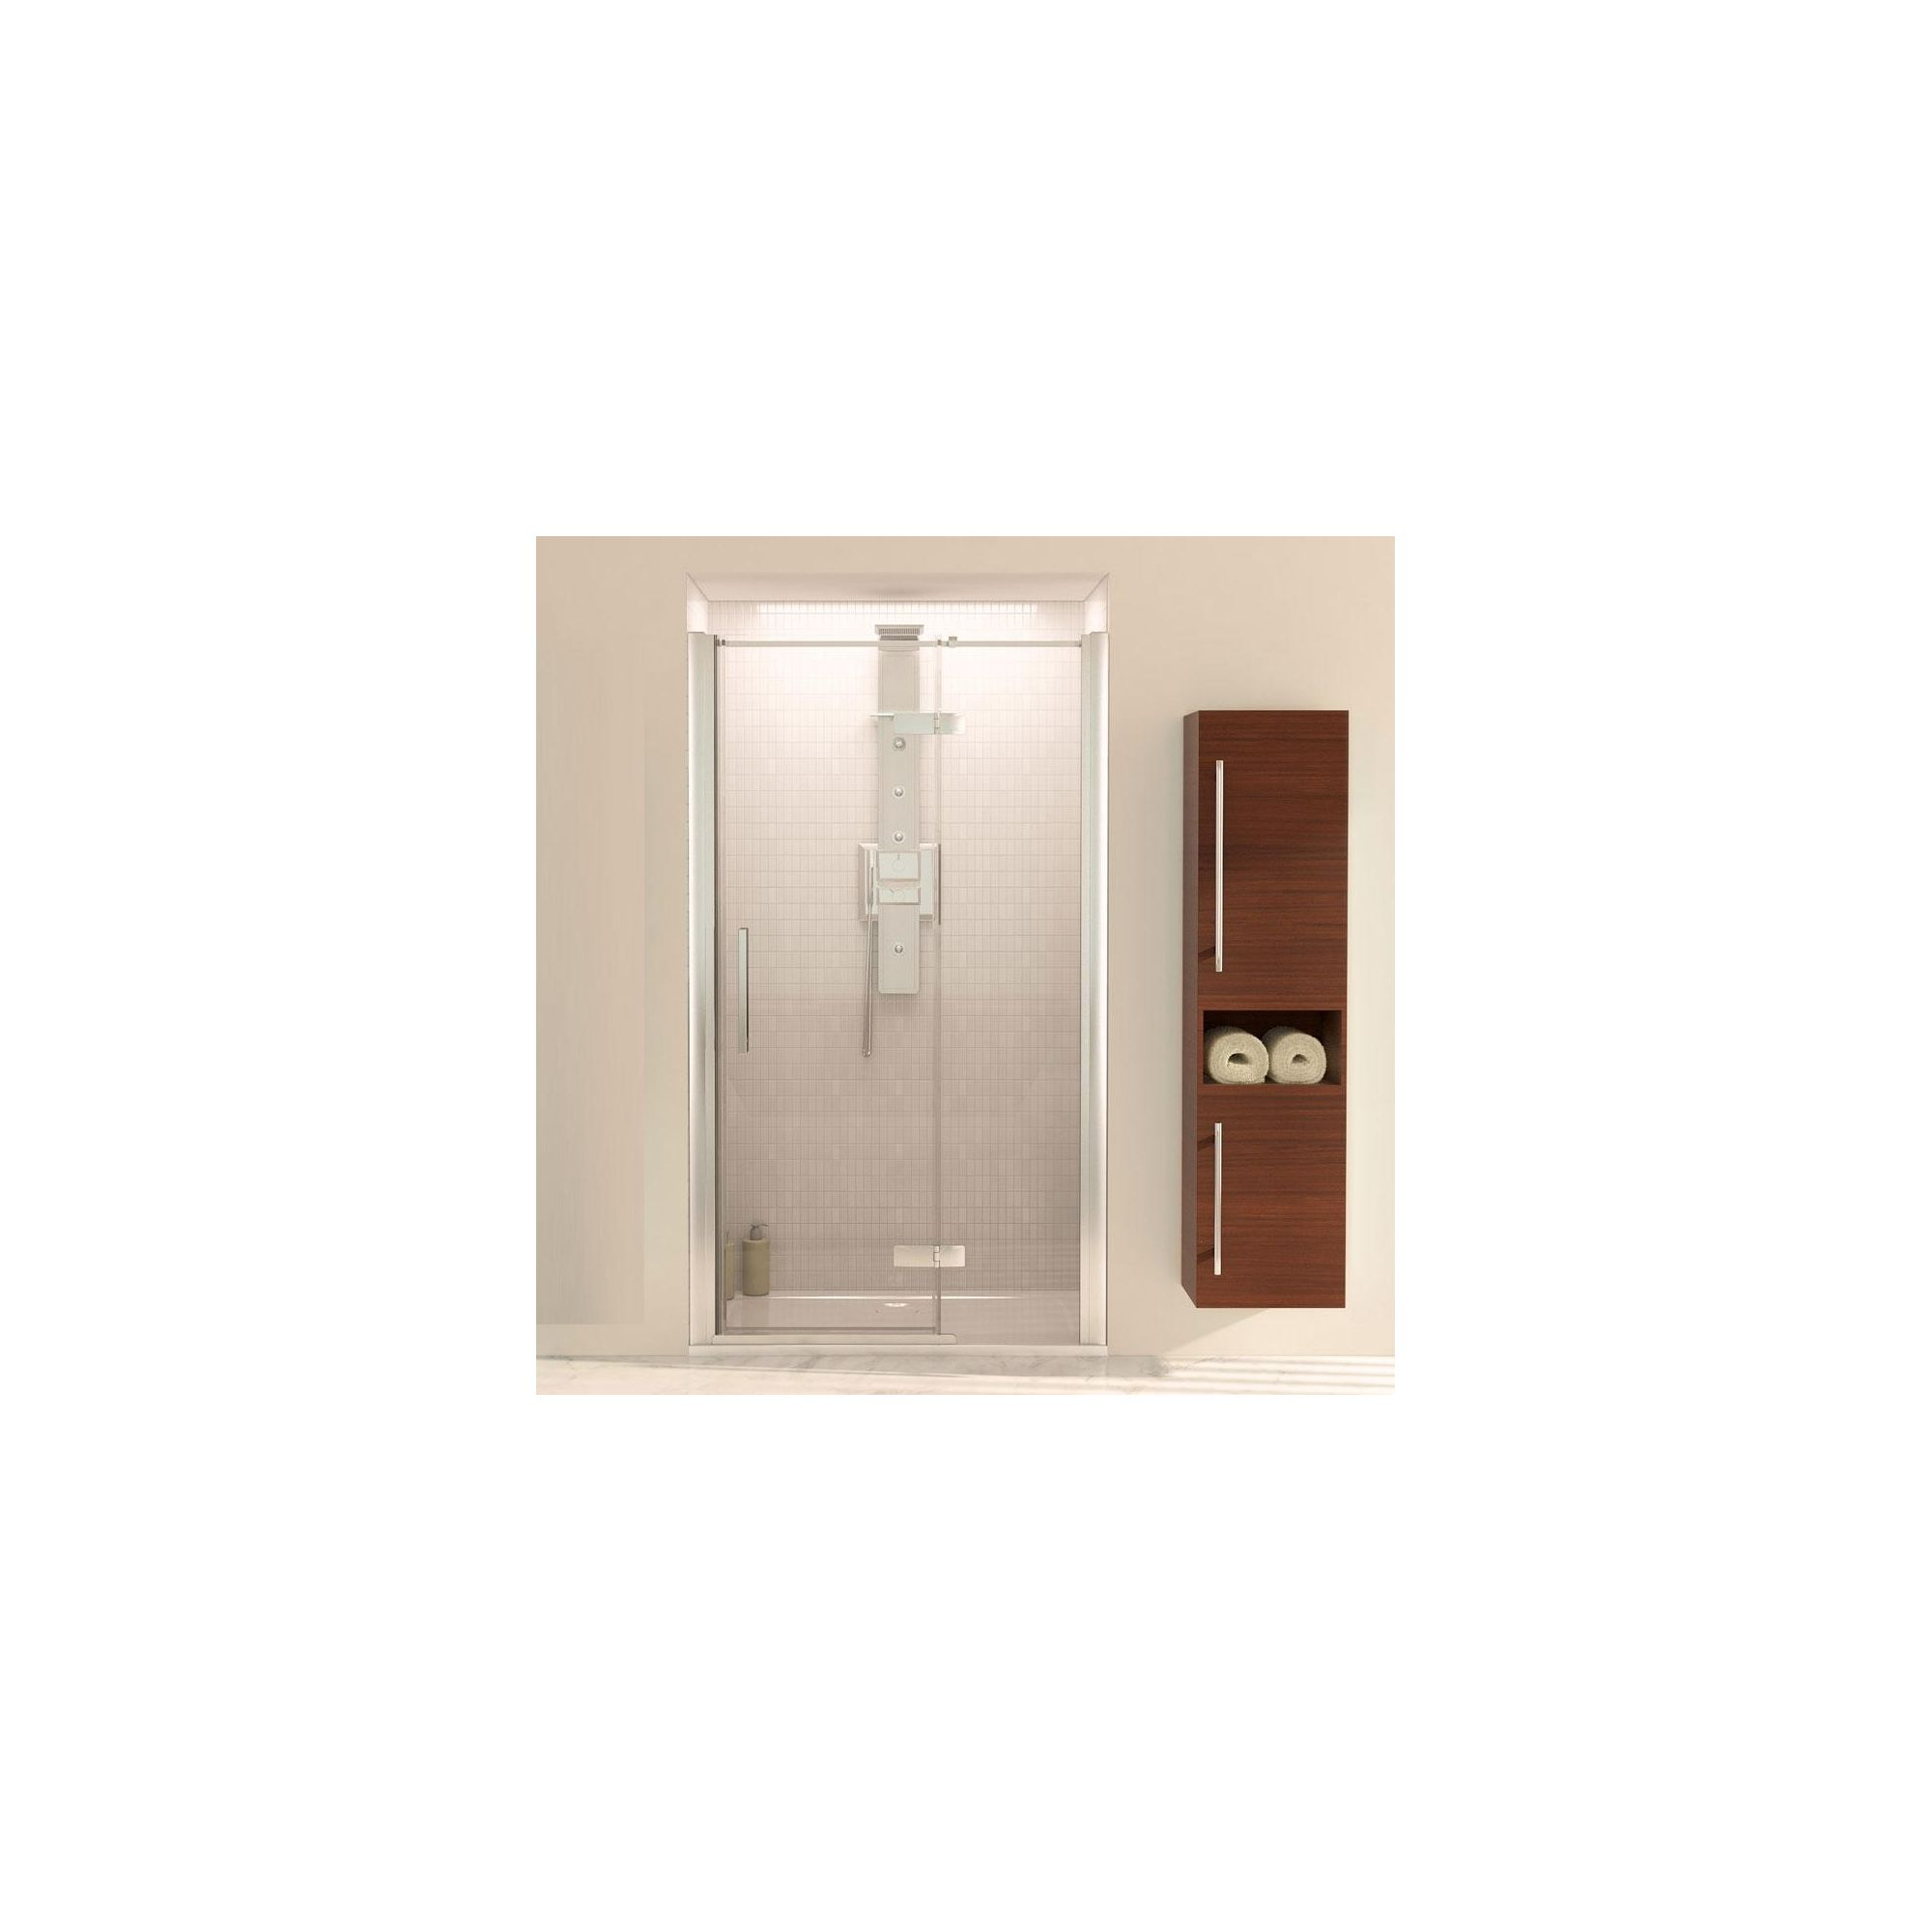 Aqualux AQUA8 Hinge Inline Pivot Shower Door and Side Panel, 1200mm x 800mm, Polished Silver Frame, 8mm Glass at Tesco Direct